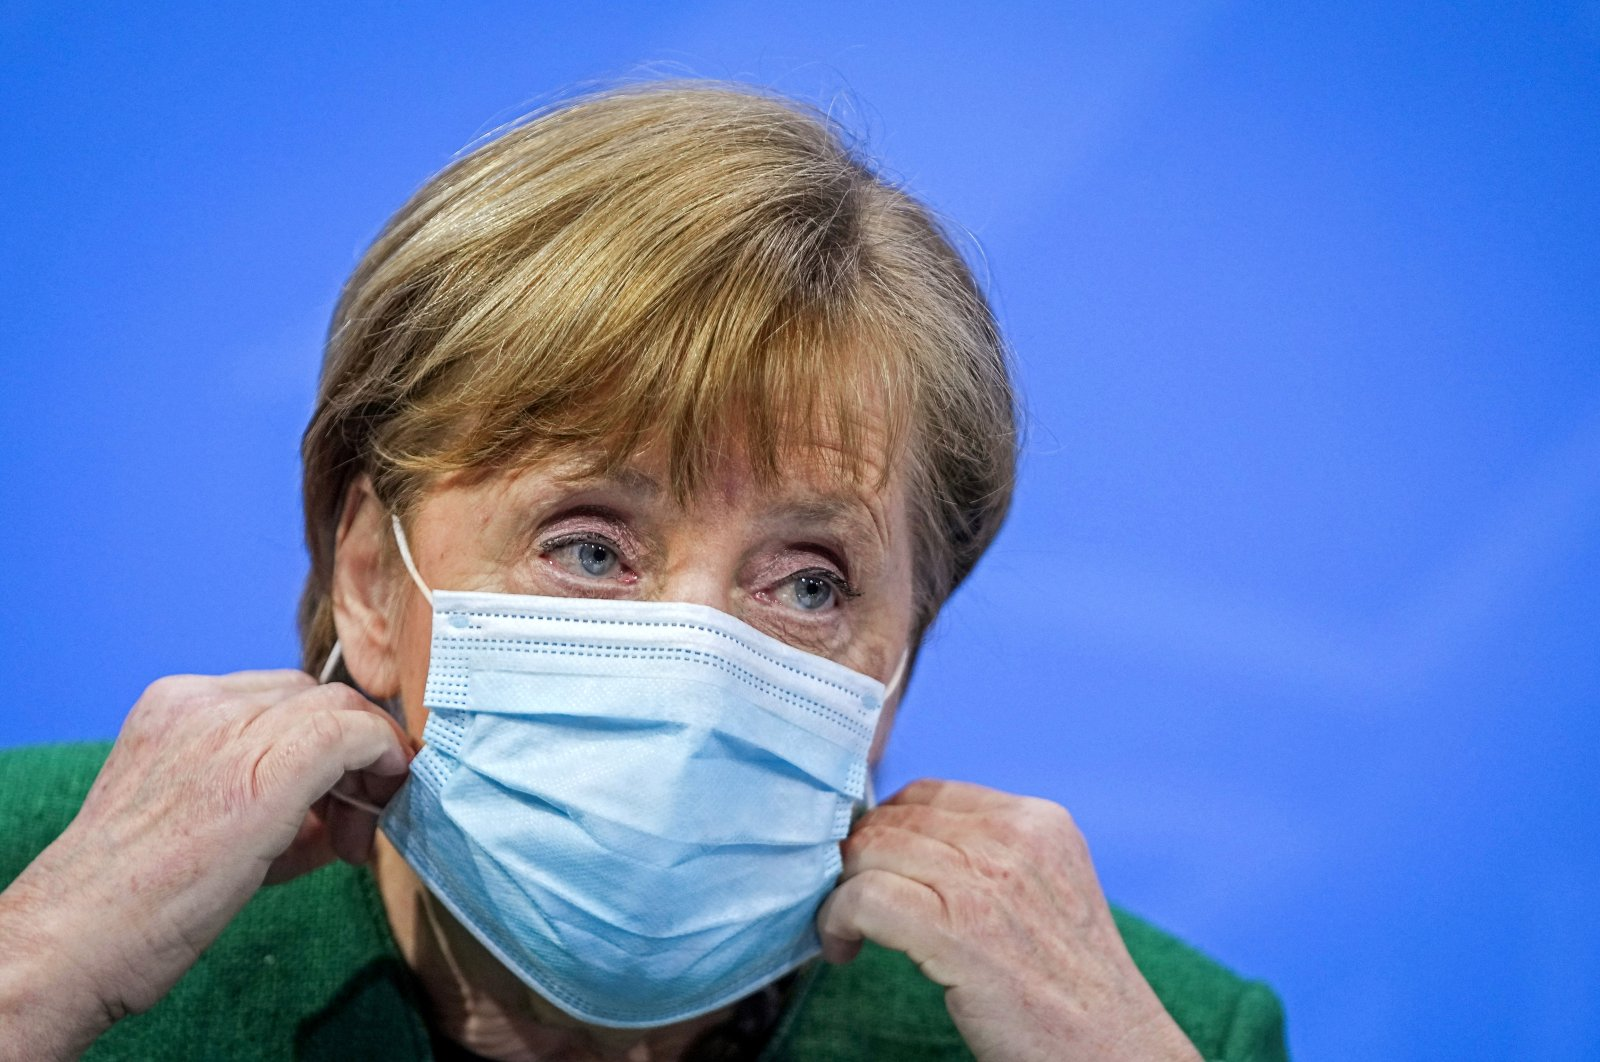 German Chancellor Angela Merkel holds her mask at a news conference after a meeting with state leaders to discuss options beyond the end of the pandemic lockdown, amid the outbreak of COVID-19, in Berlin, Germany, March 23, 2021. (Reuters Photo)